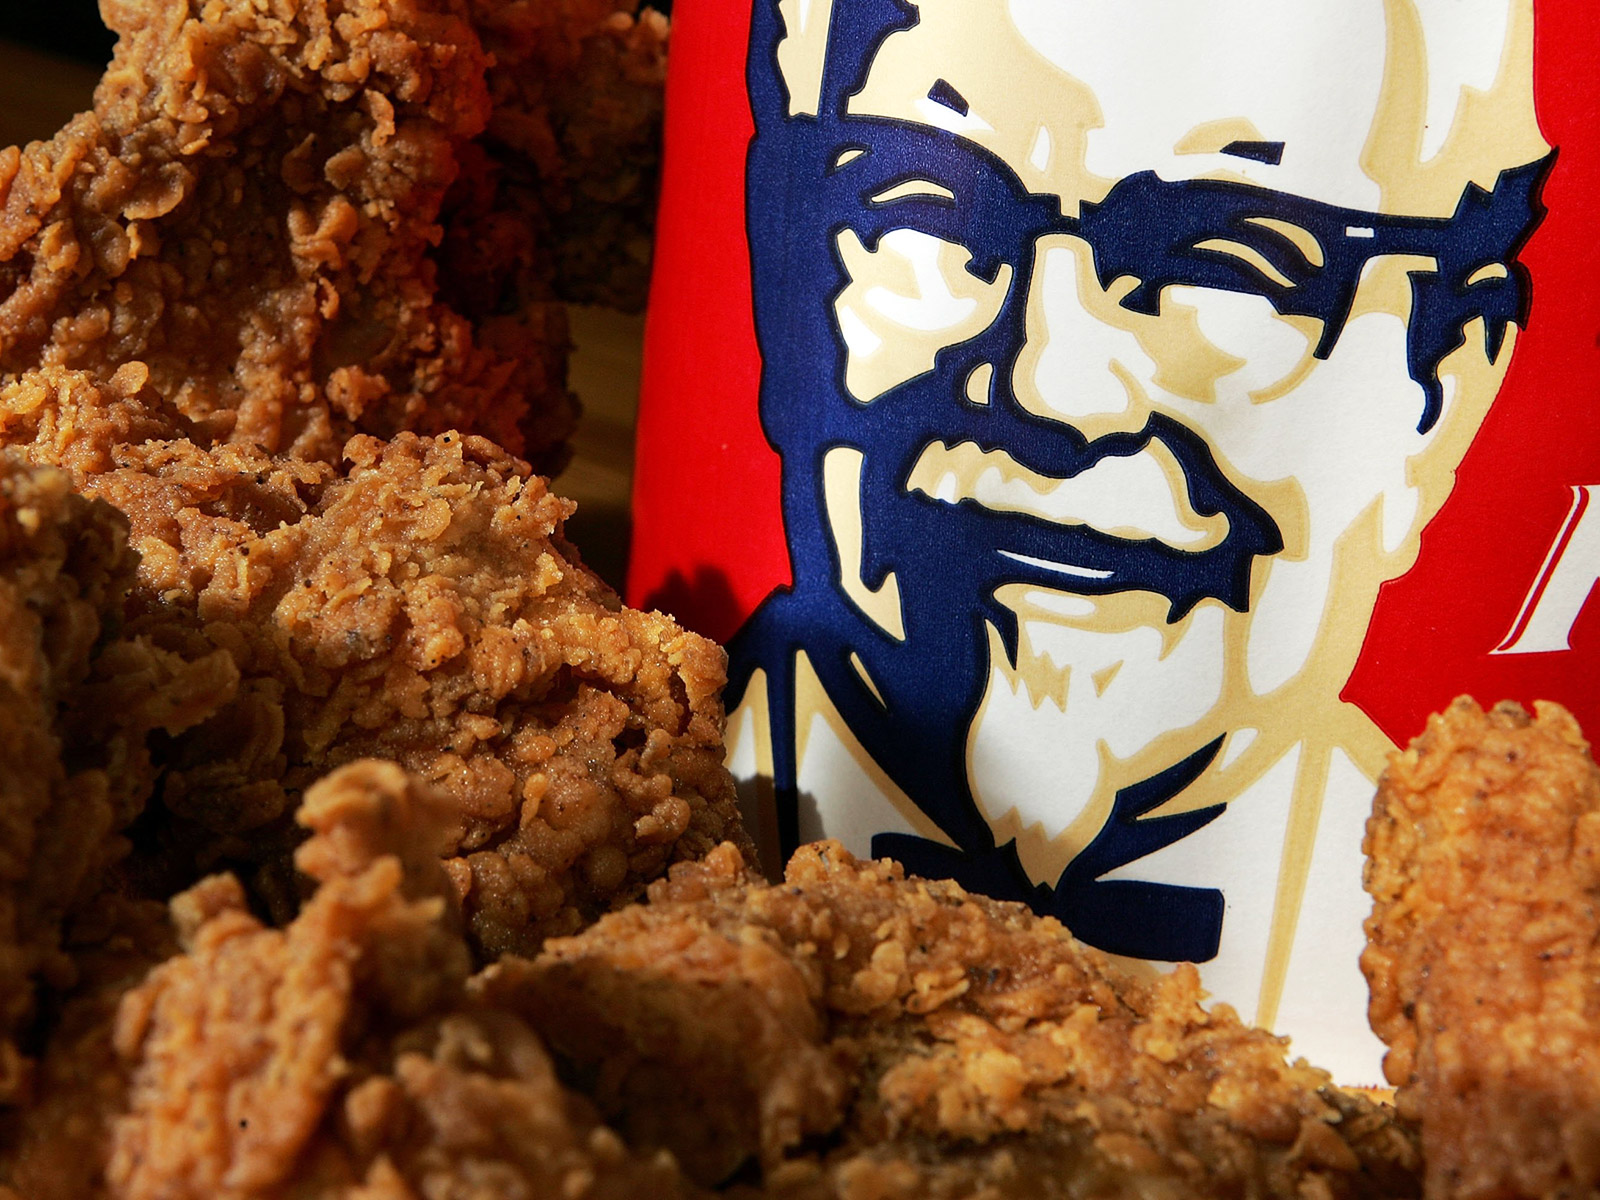 kfc most complained about ad